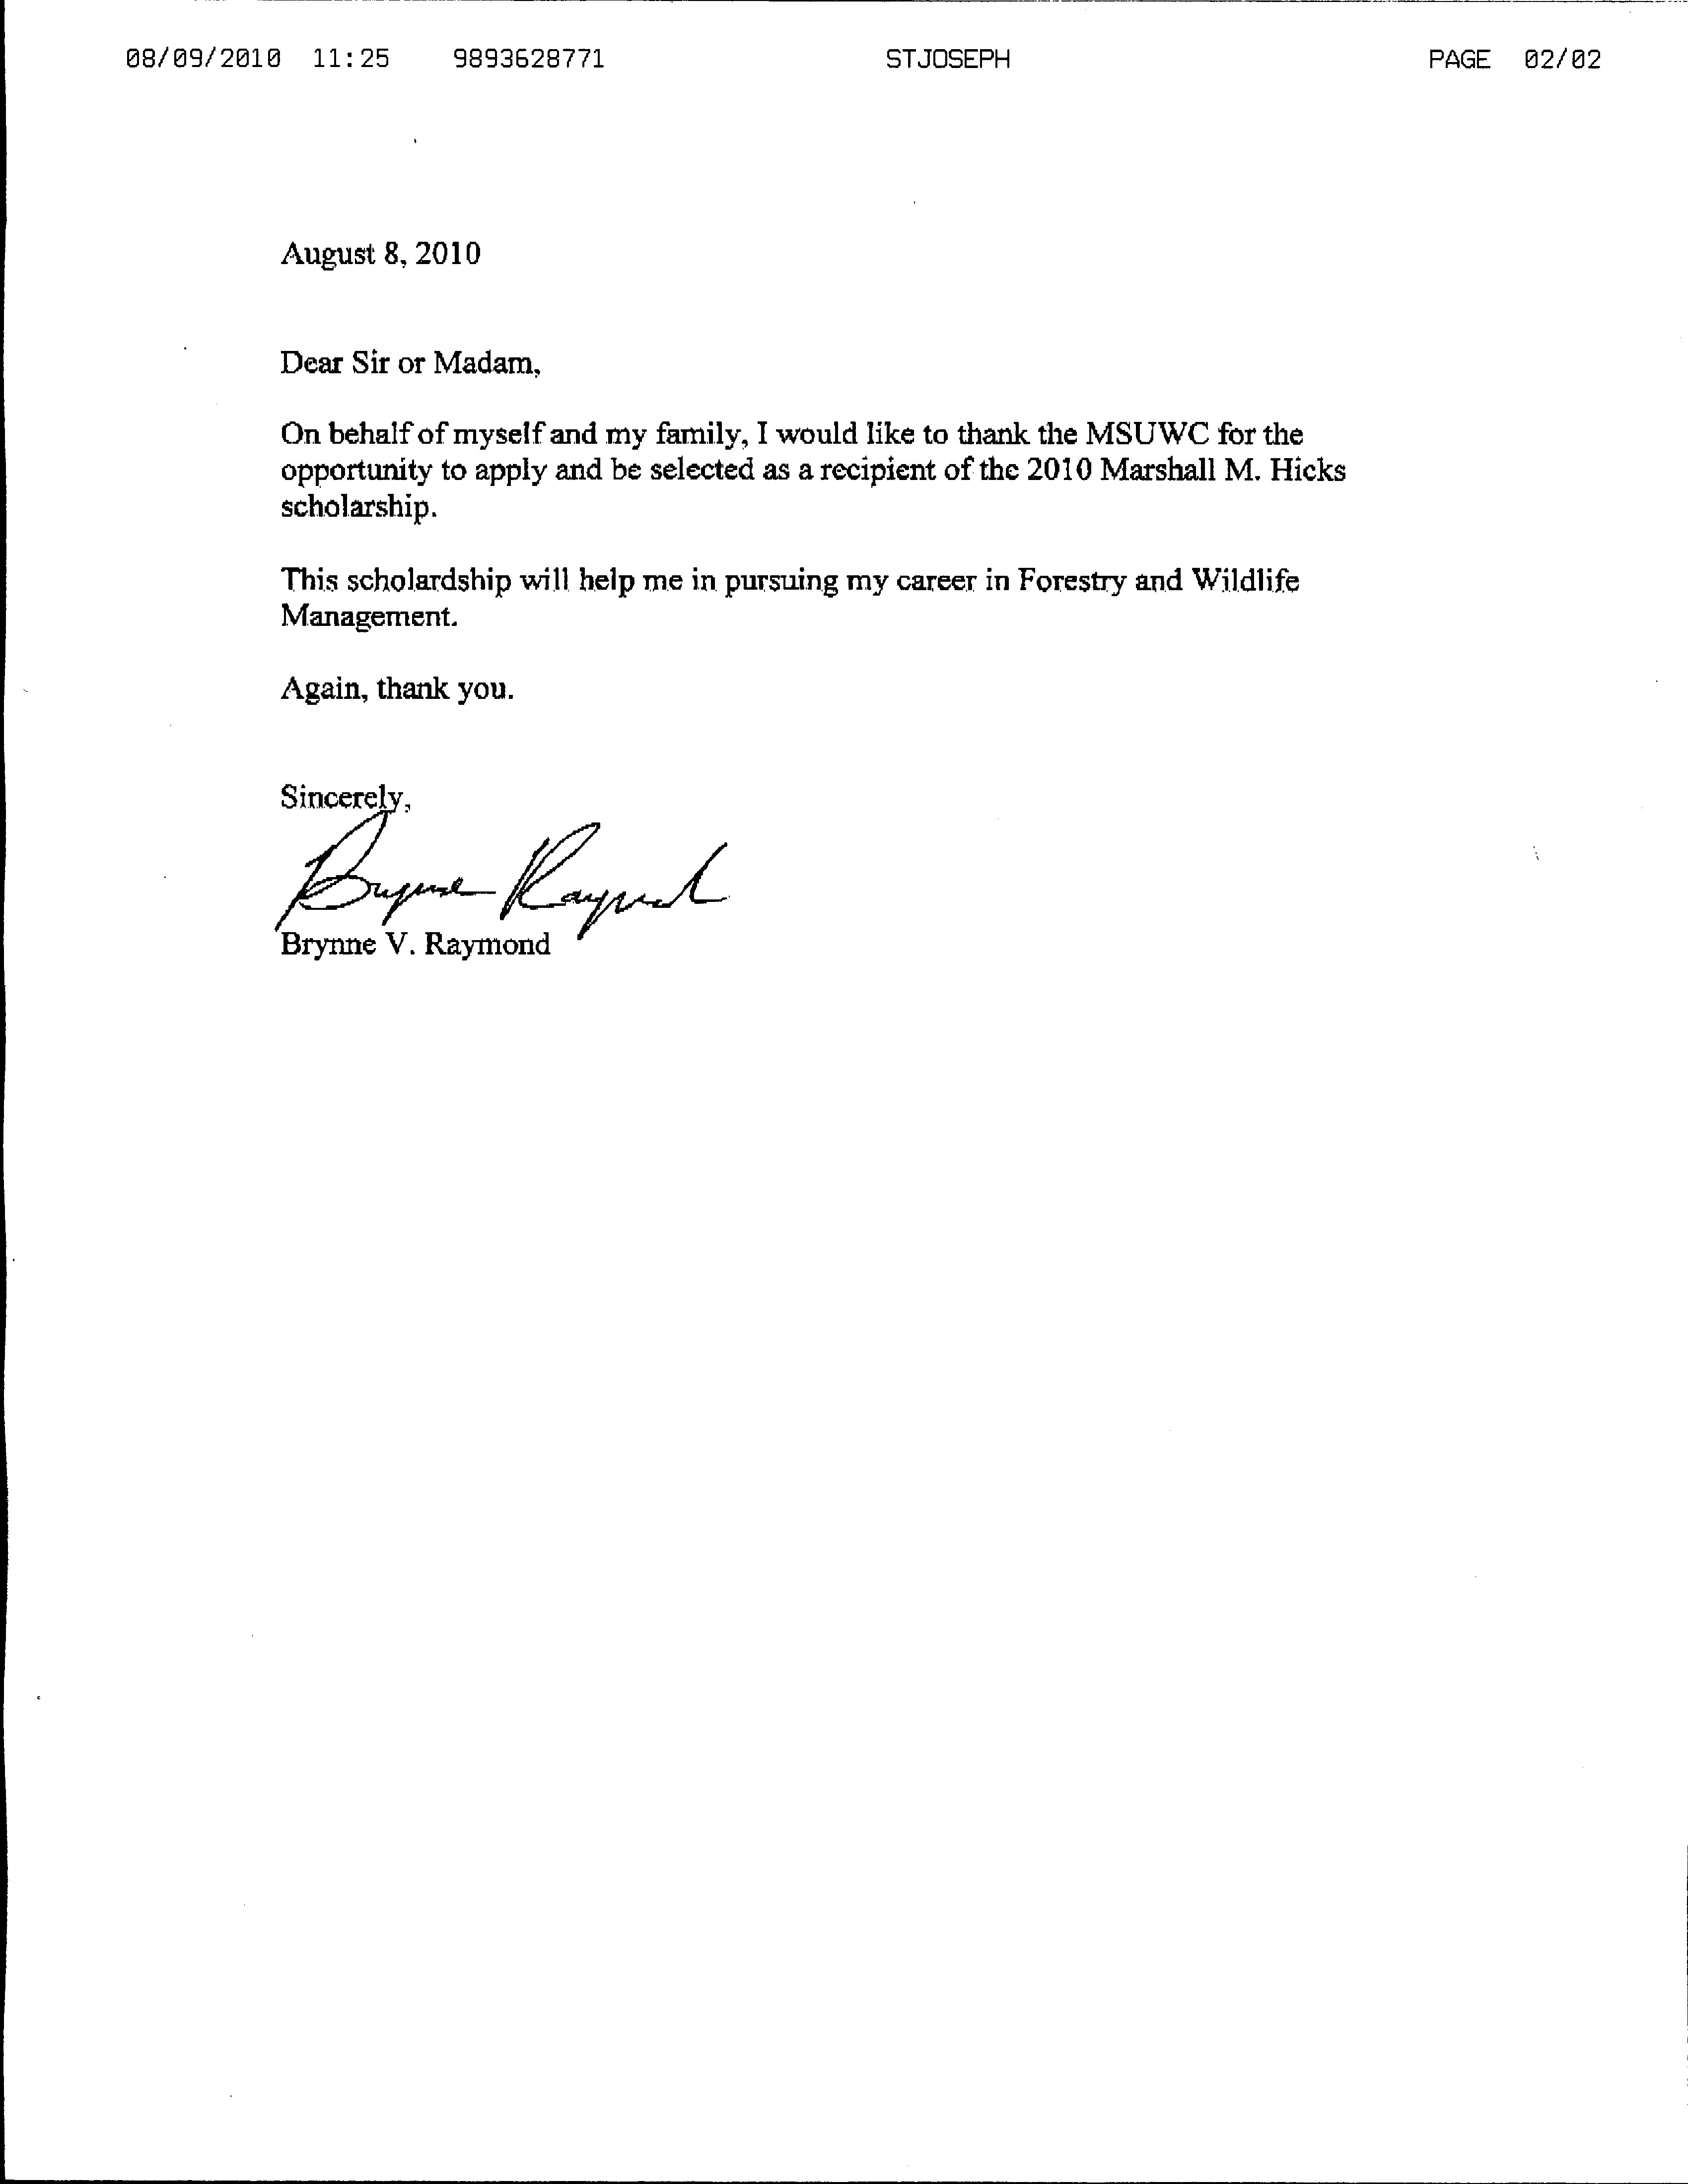 Example Of Thank You Letter For Scholarship Grant from msuwc.org